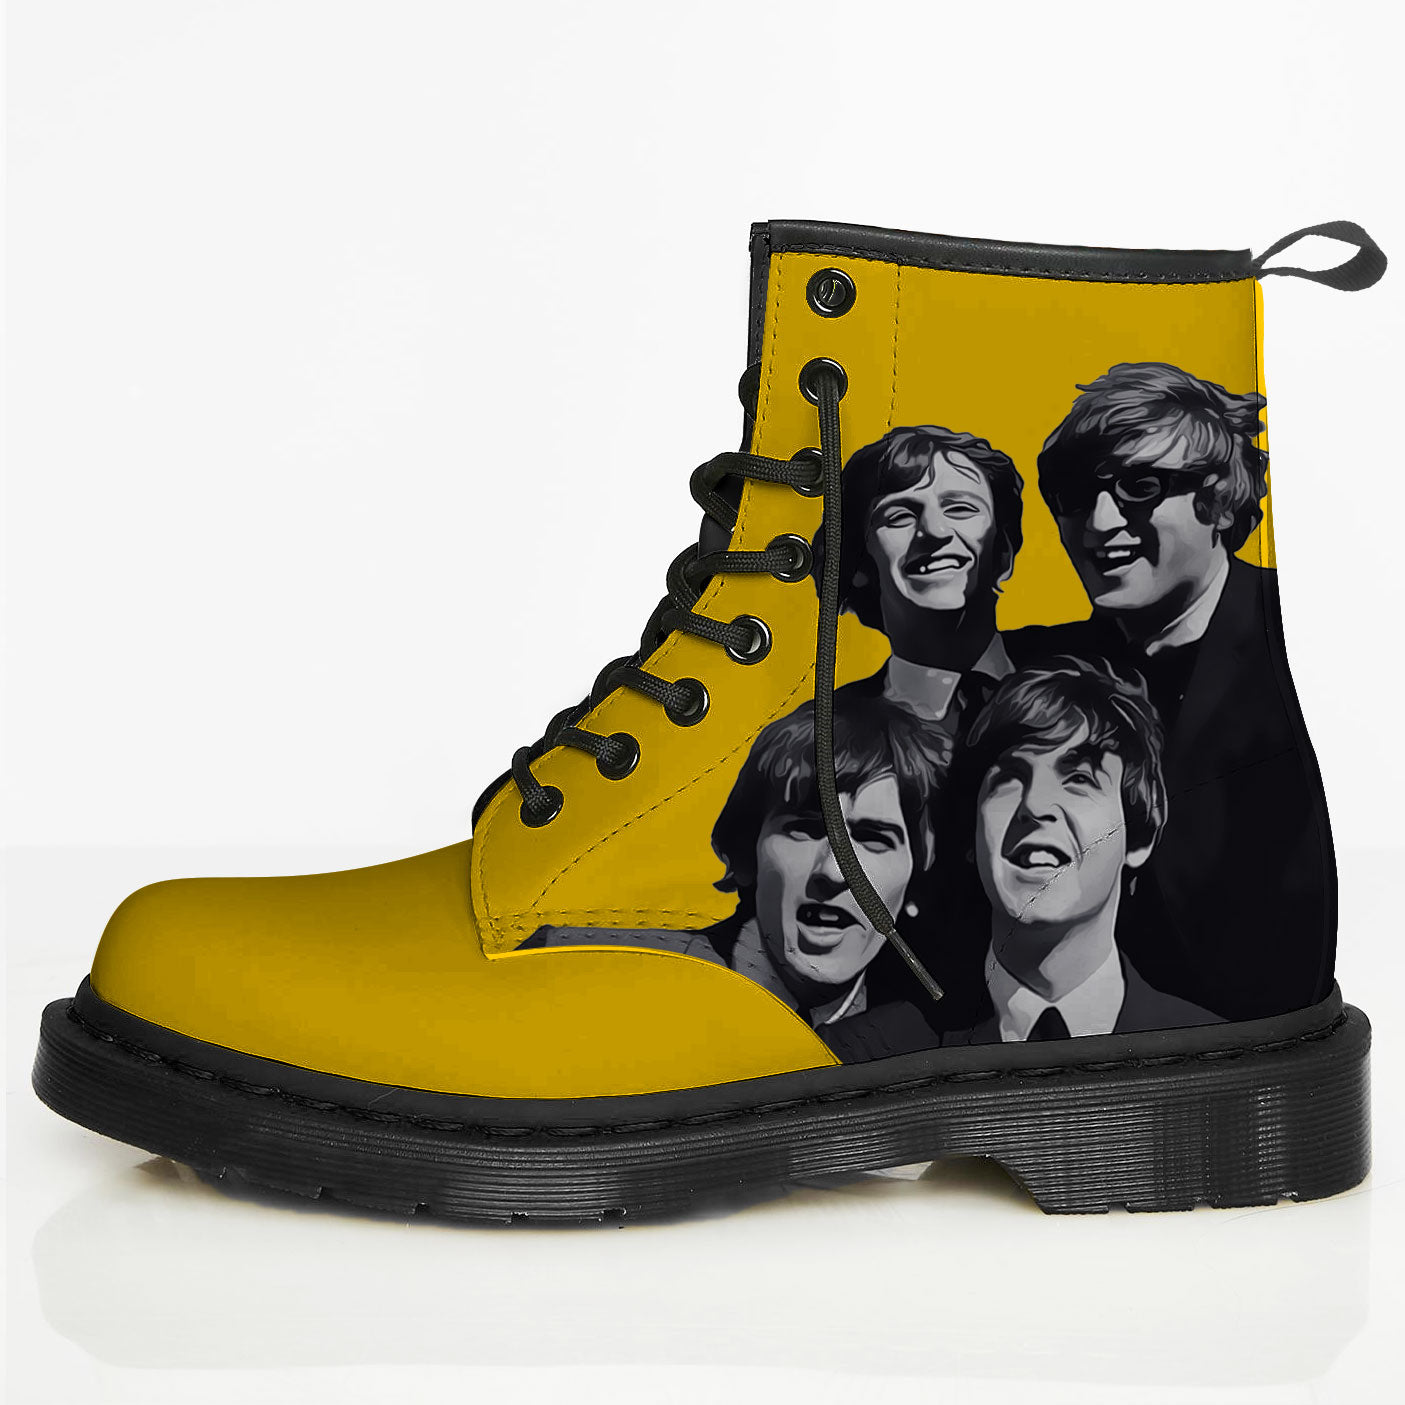 The Beatles Boots